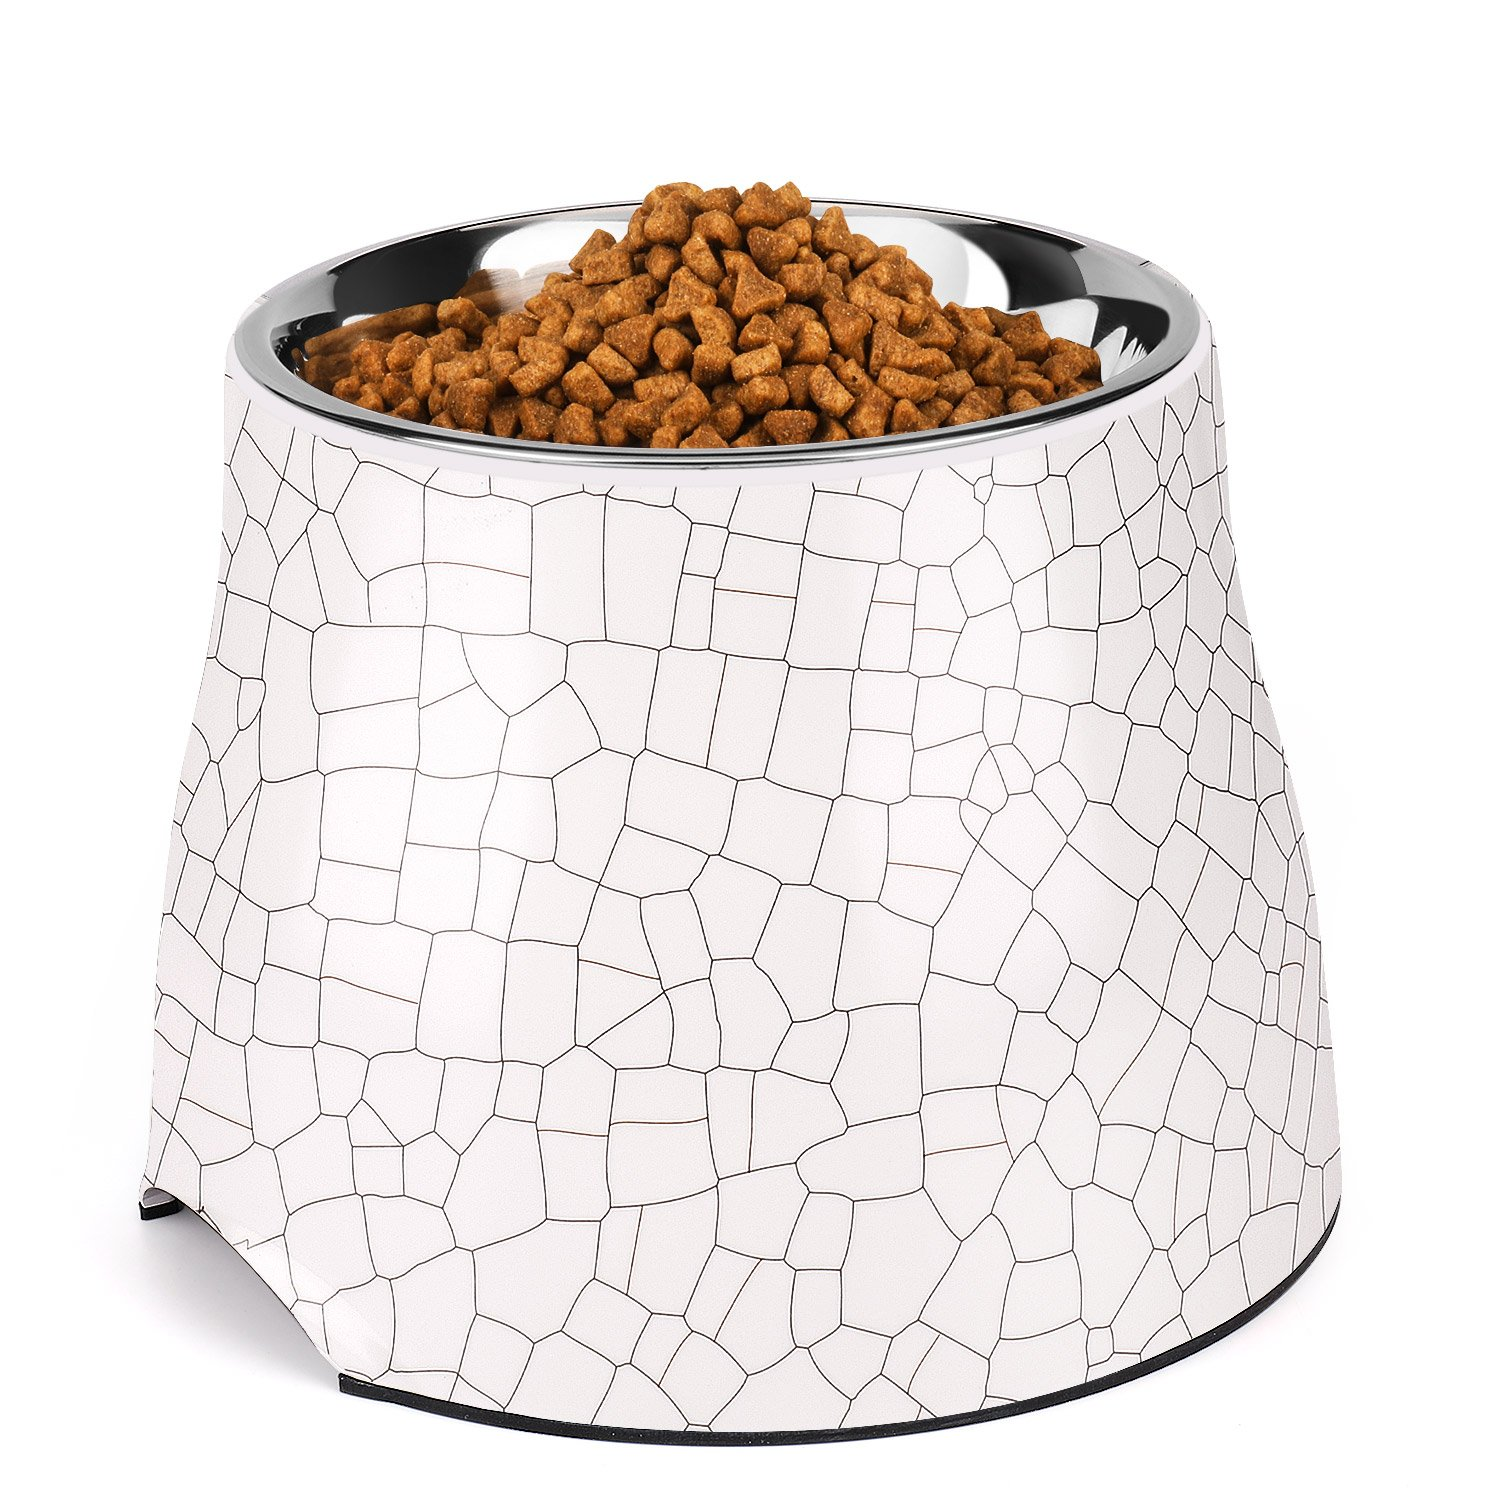 Flexzion Stainless Steel Elevated Dog Bowl Feeder - Raised Cat Pet Dish with Removable Food Water Holder Anti-tip Rubber Slip Bottom for Geriatric Older Medium Large Breeds Puppy (31 oz, Cracks)